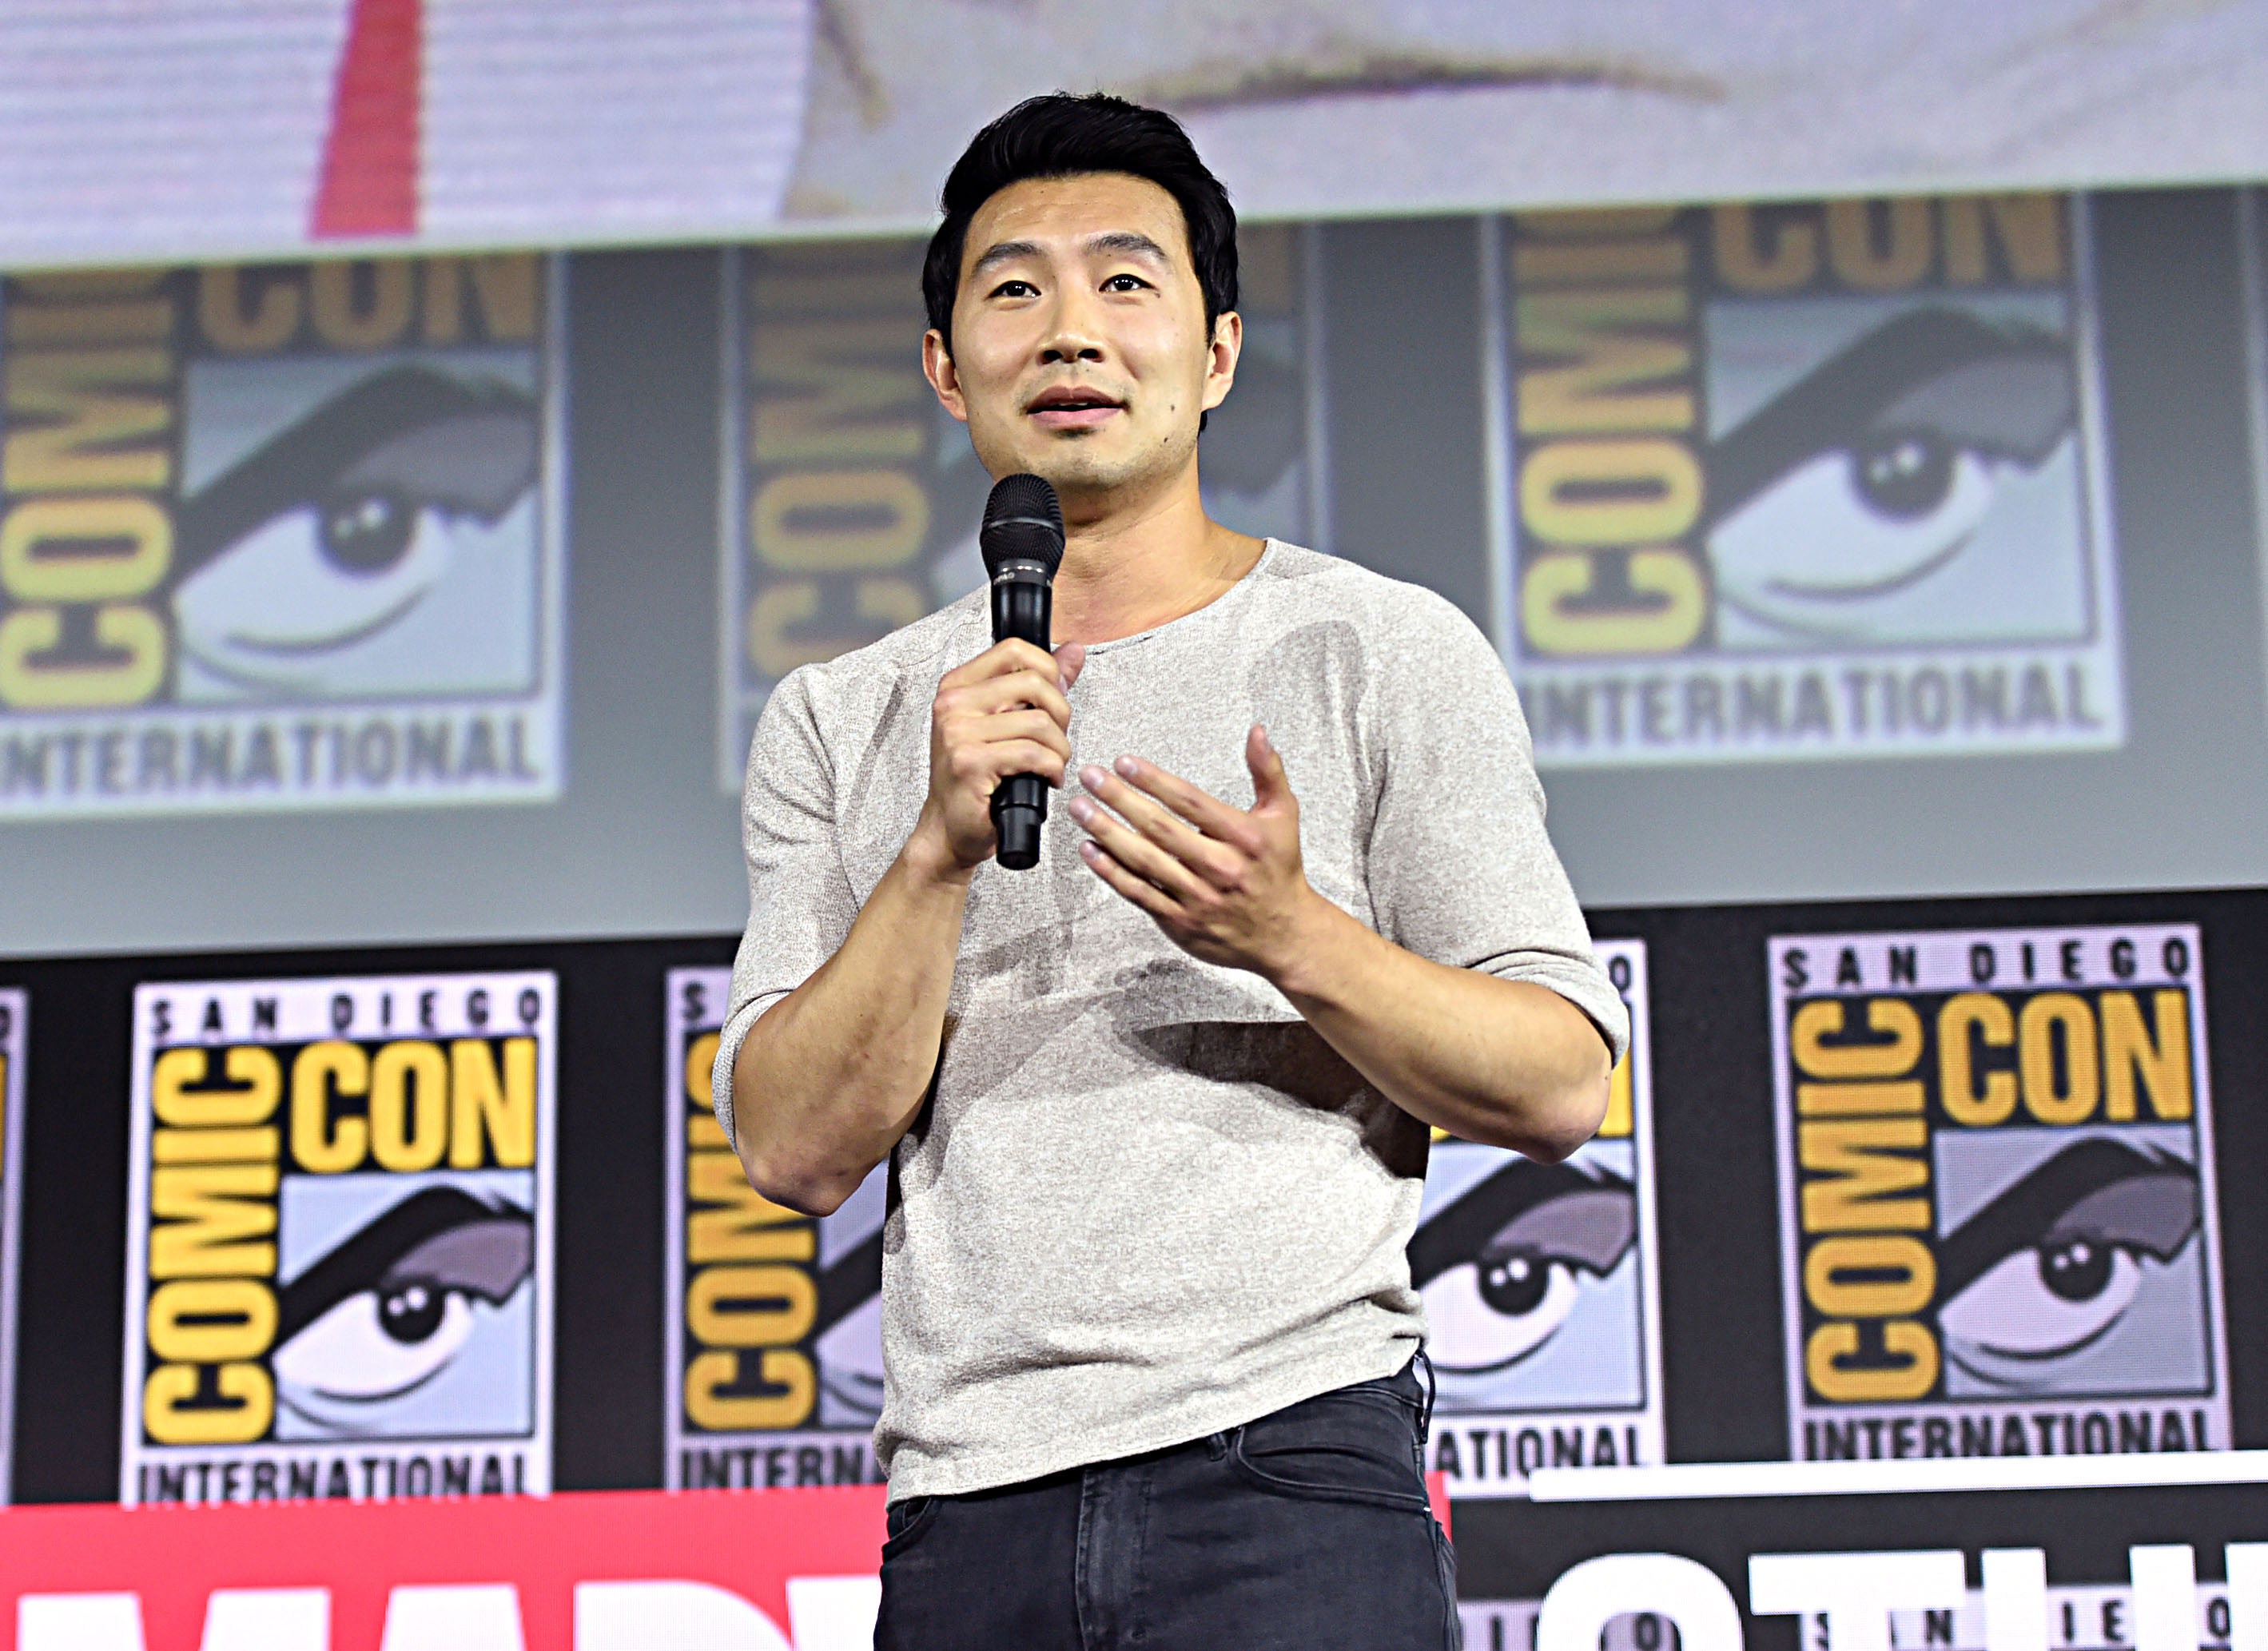 Simu Liu of Marvel Studios' 'Shang-Chi and the Legend of the Ten Rings' at the San Diego Comic-Con 2019